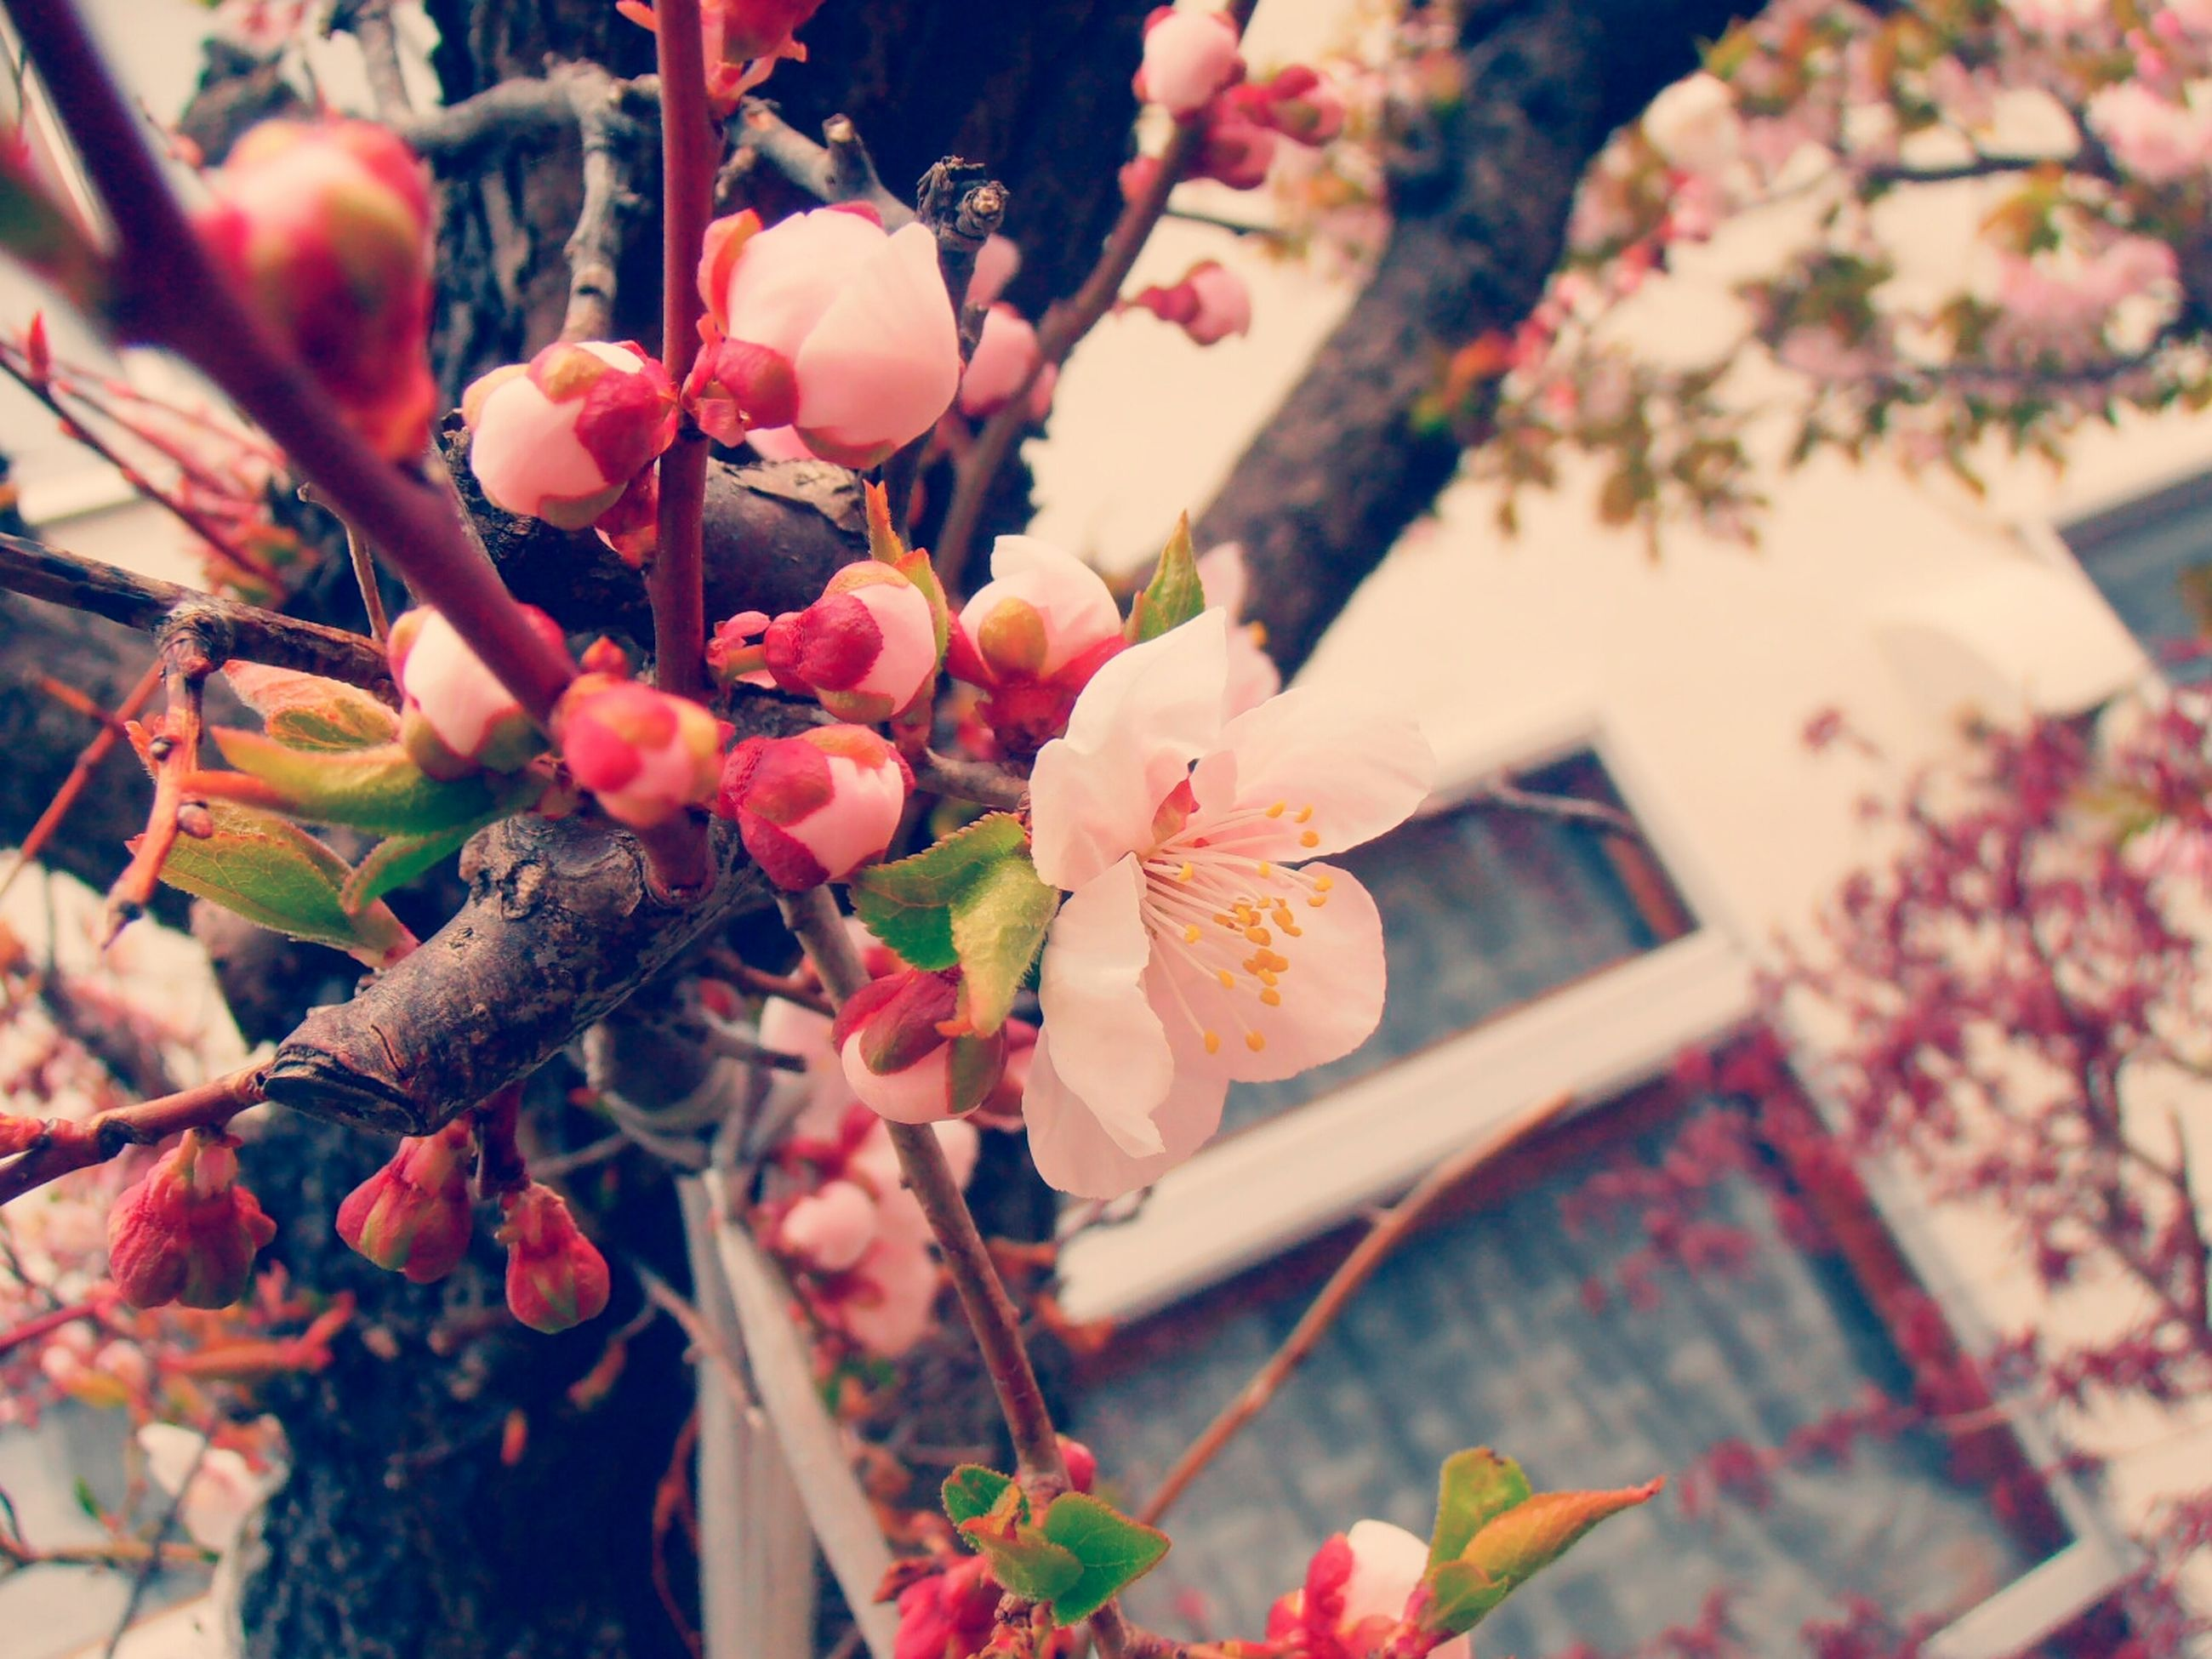 flower, freshness, fragility, growth, petal, beauty in nature, focus on foreground, branch, pink color, close-up, nature, blooming, flower head, blossom, in bloom, plant, springtime, twig, day, tree